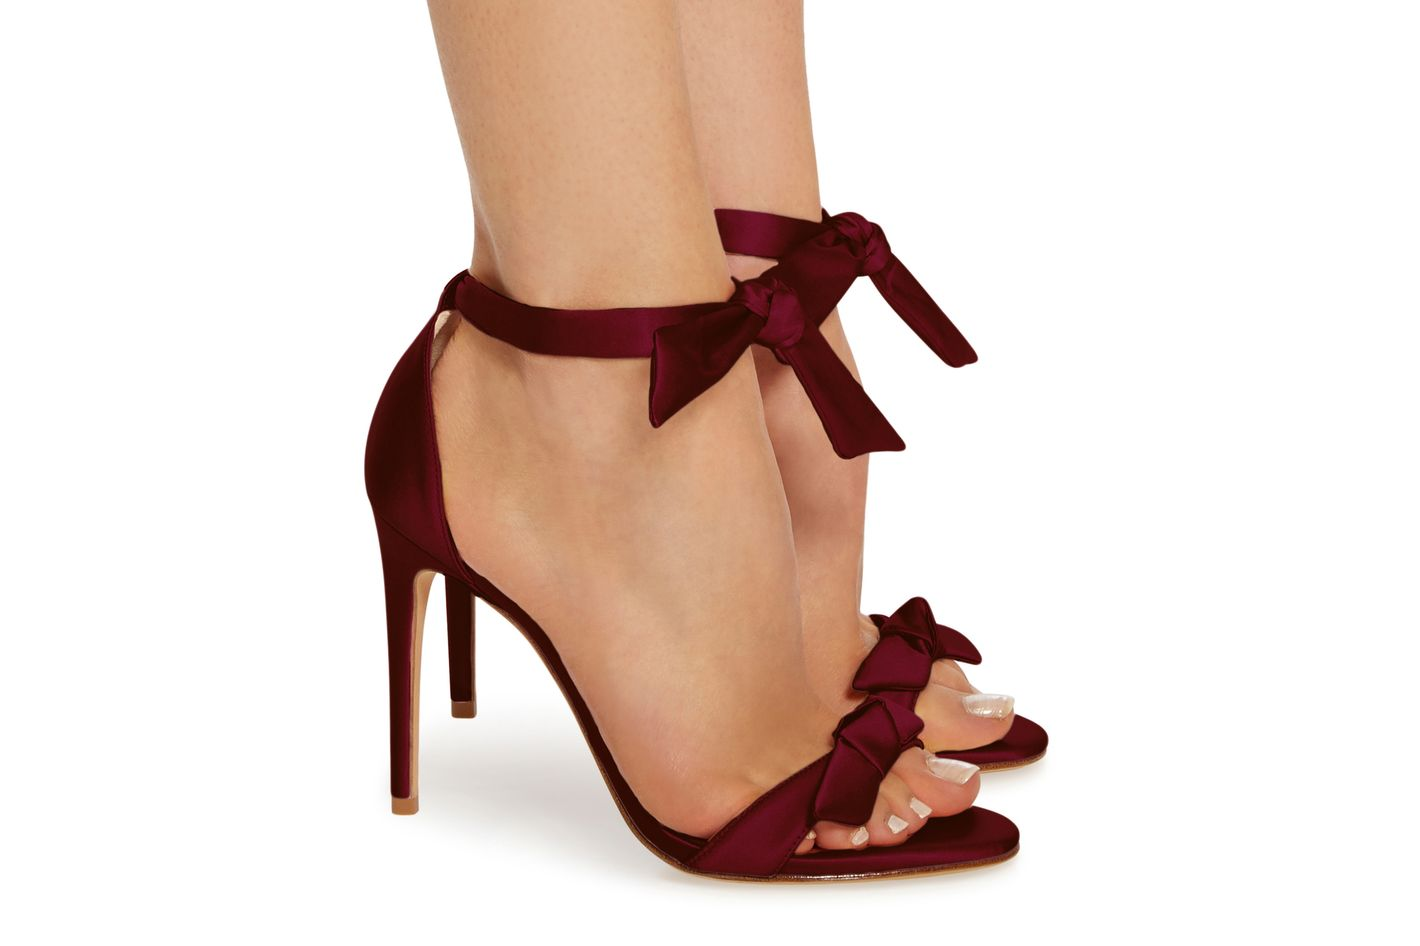 Alexandre Birman M'O Exclusive Clarita Satin Sandals